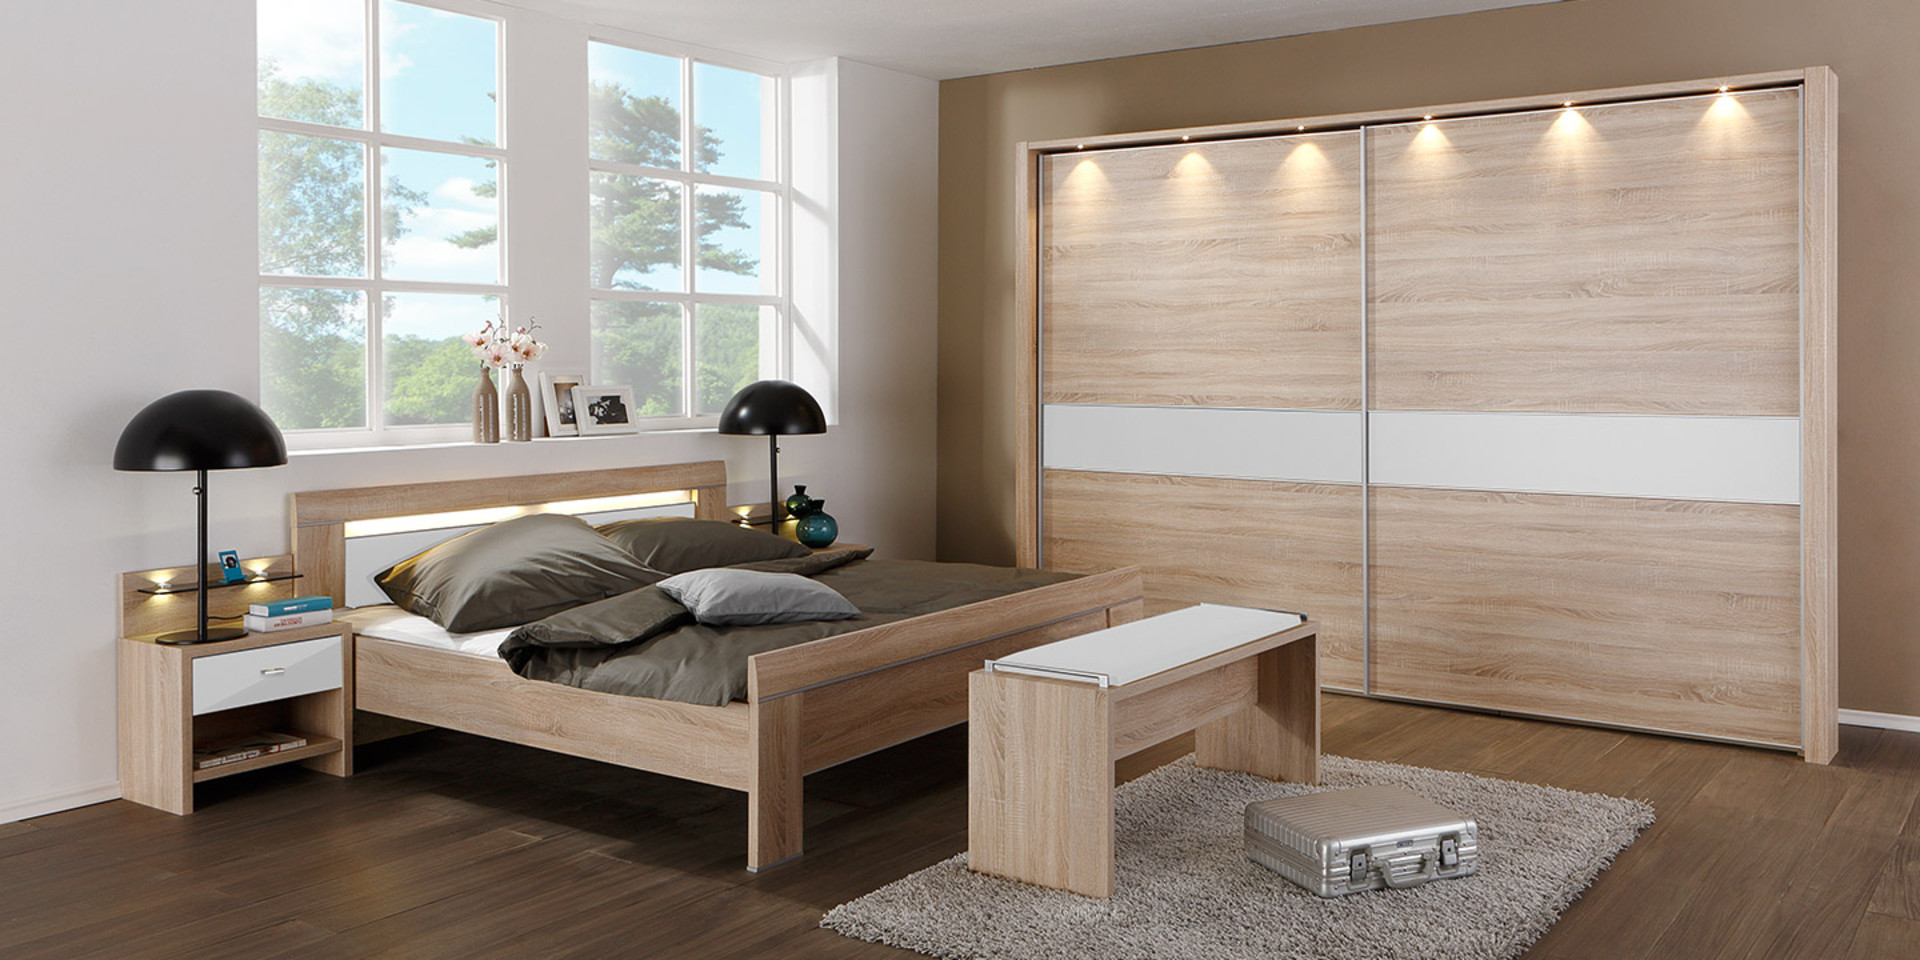 eiche modern top marvellous walnussholz holz grau eiche modern set modernes archived on. Black Bedroom Furniture Sets. Home Design Ideas